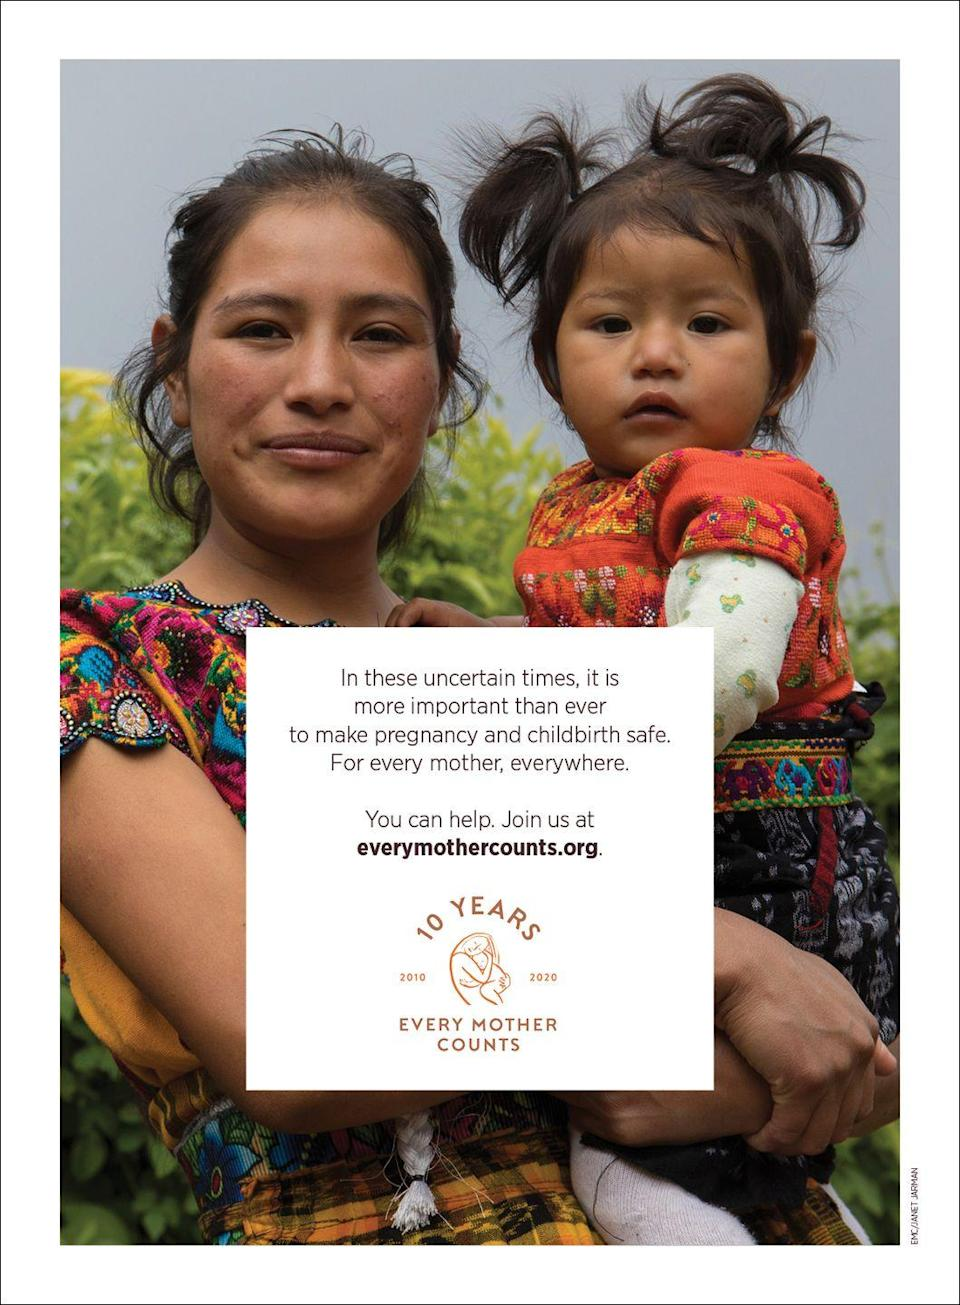 """<p>In these uncertain times, it is more important than ever to make pregnancy and childbirth safe. For every mother, everywhere.</p><p>You can help. Join us <a href=""""https://everymothercounts.org/"""" rel=""""nofollow noopener"""" target=""""_blank"""" data-ylk=""""slk:here."""" class=""""link rapid-noclick-resp"""">here.</a></p>"""